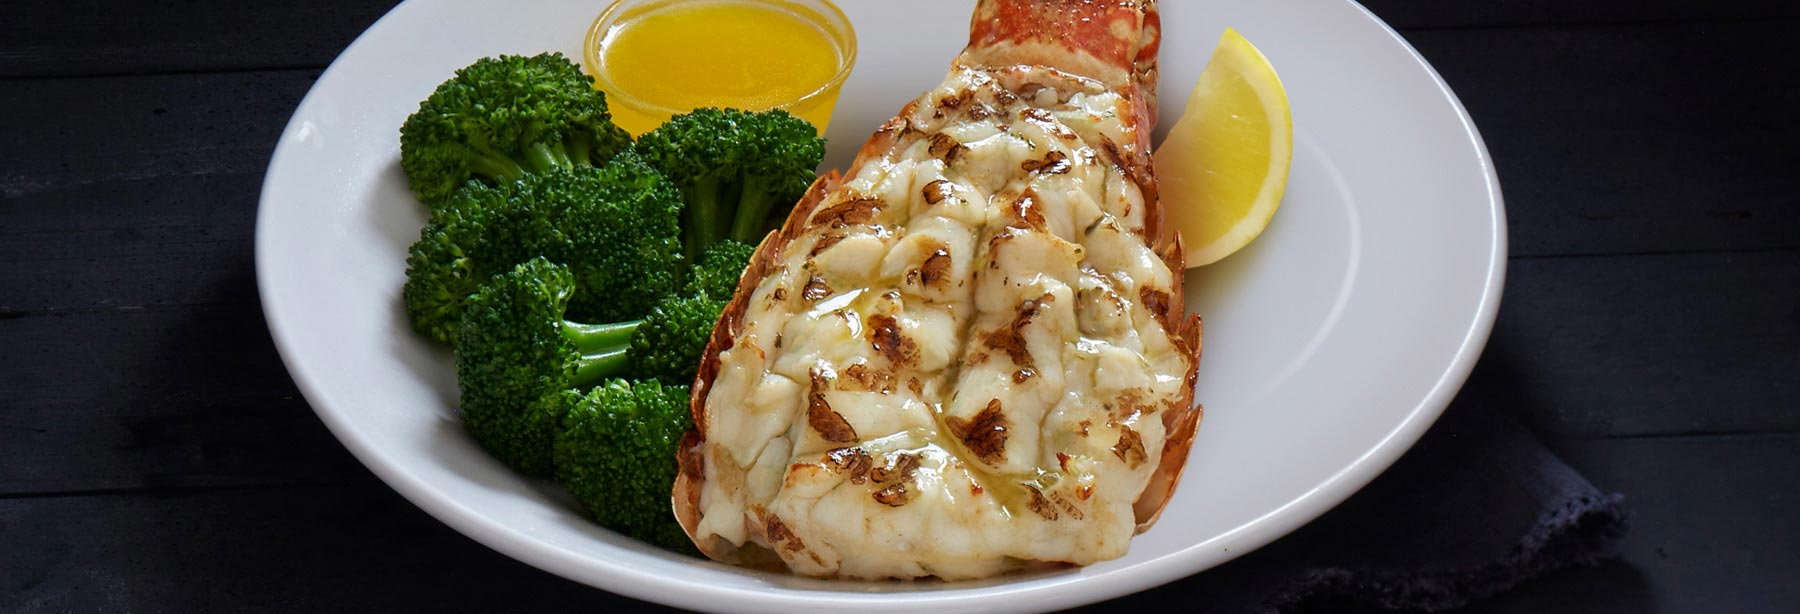 Lobster tail dinner near me lobster house for Where can i buy fresh fish near me